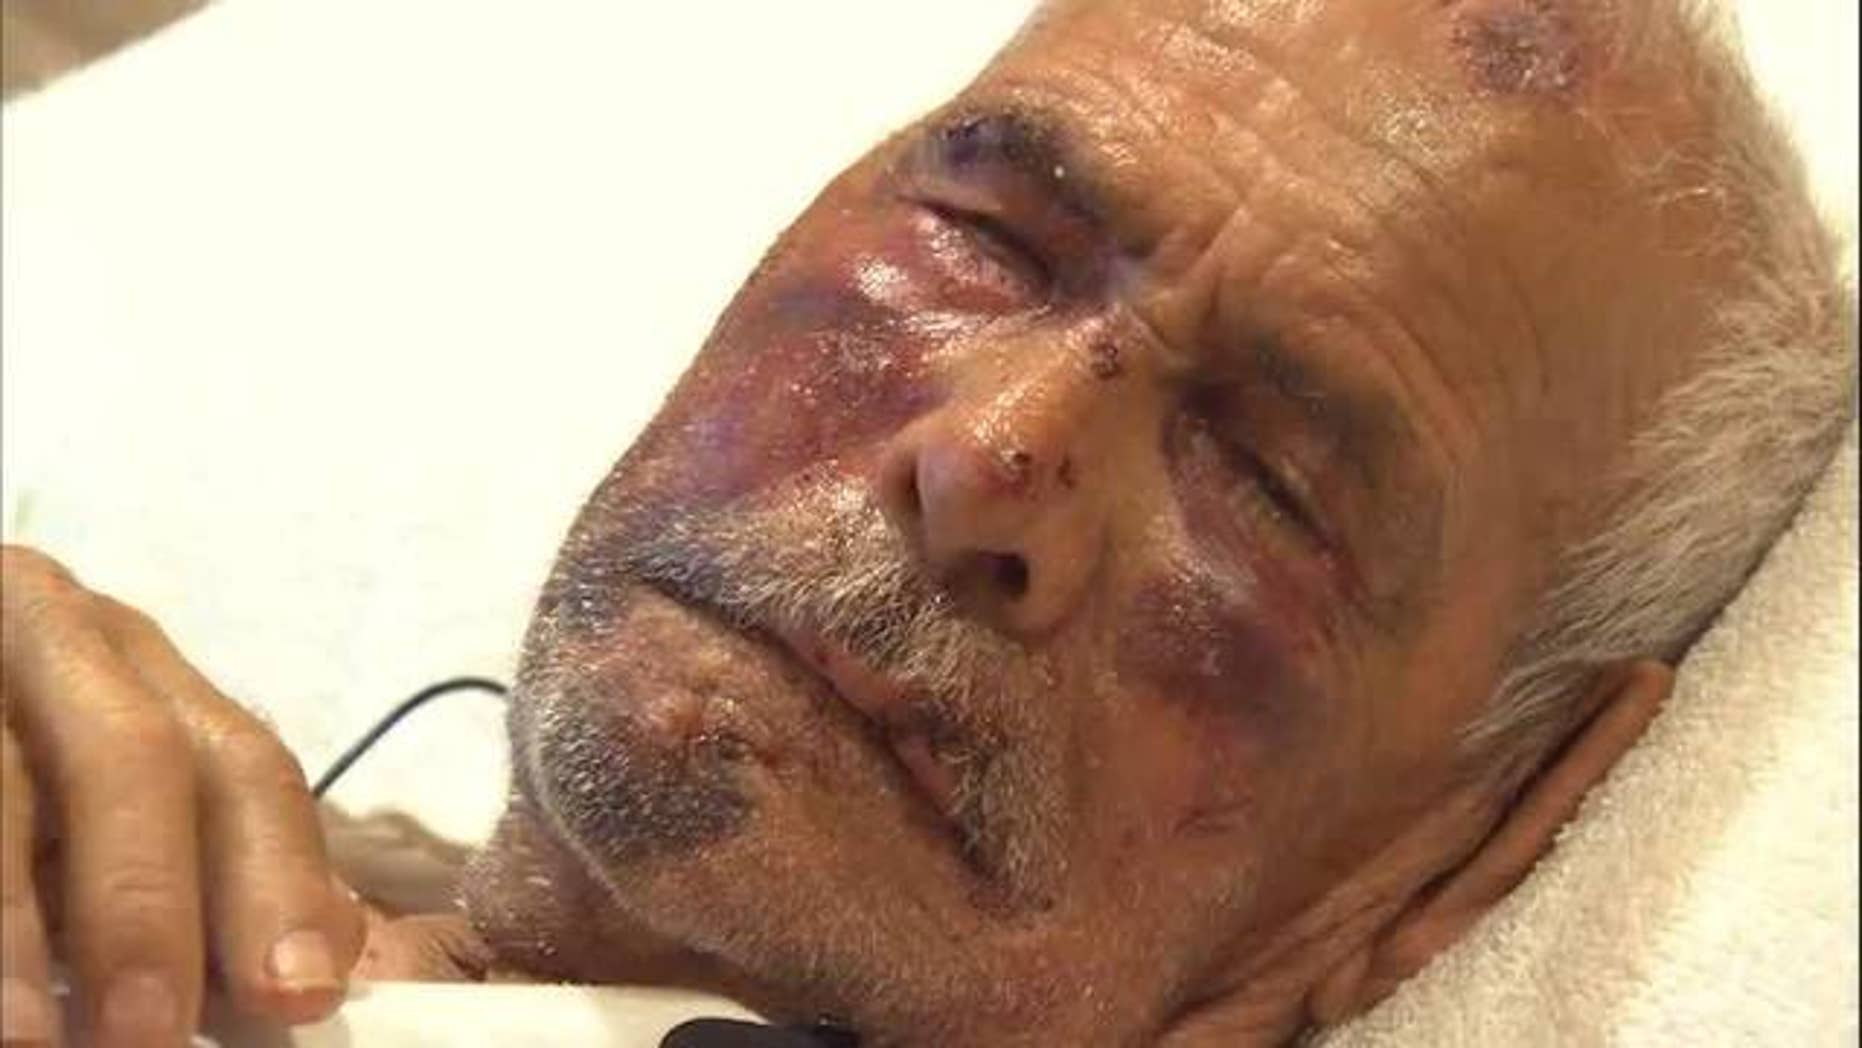 Rodolfo Rodriguez, 92, was beaten in the face with a break and stomped on during an attack on July 4.